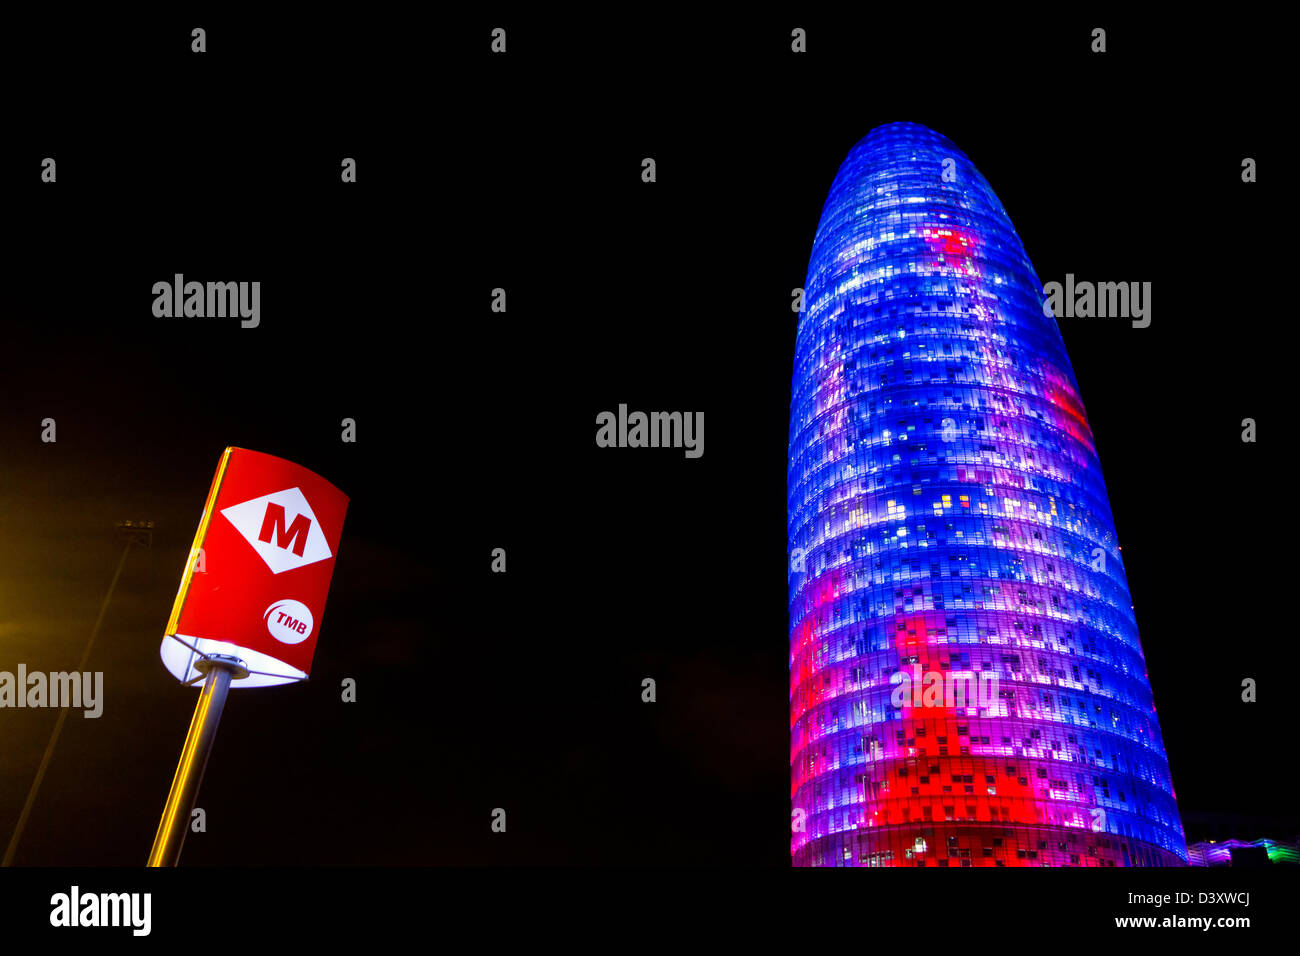 Metro logo next to the Agbar Tower in Barcelona, Spain, Europe - Stock Image